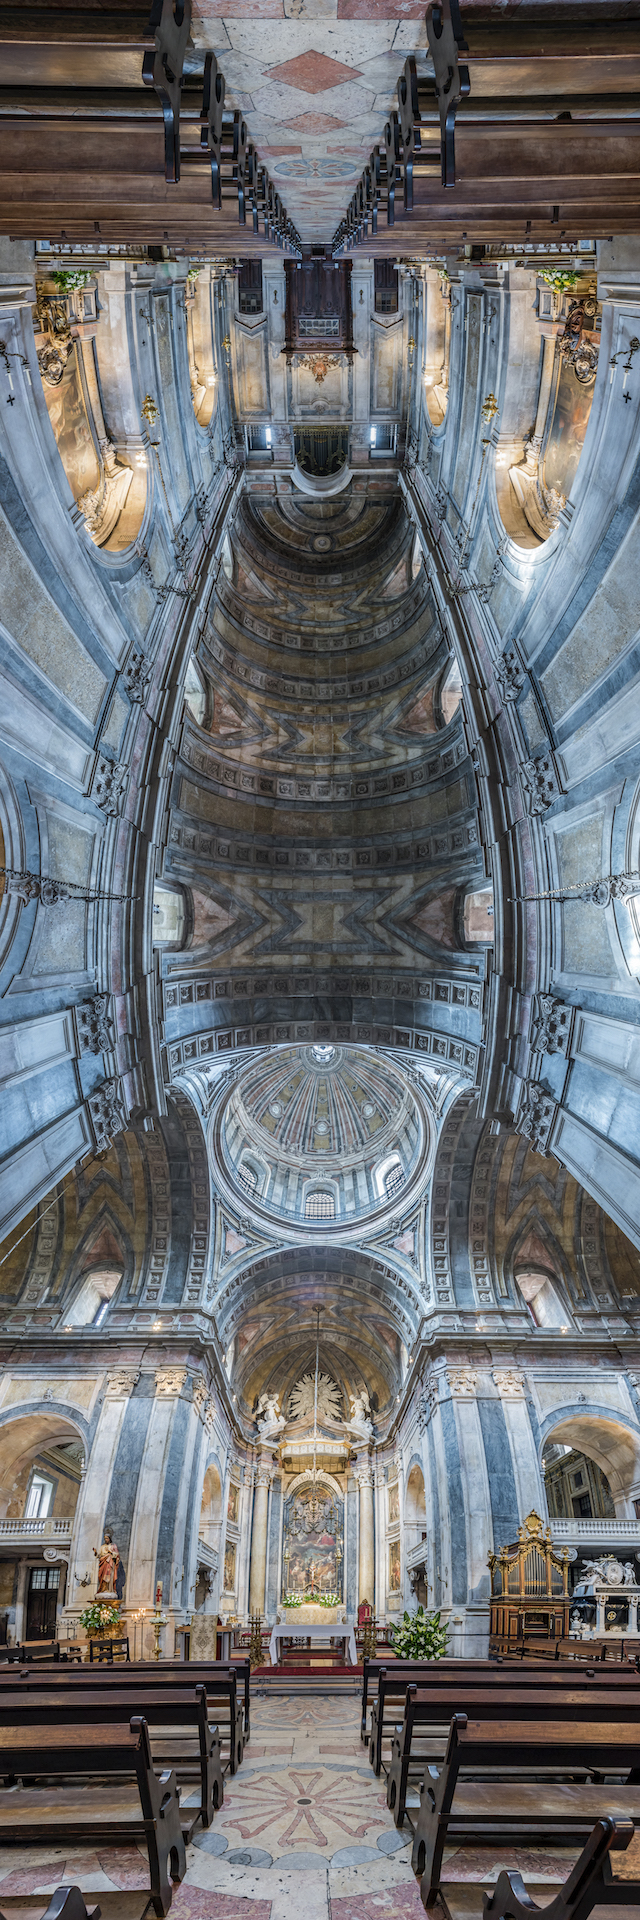 [Exclusive Photos] Explore Portugal's Churches in These Stunning Vertical Panoramas